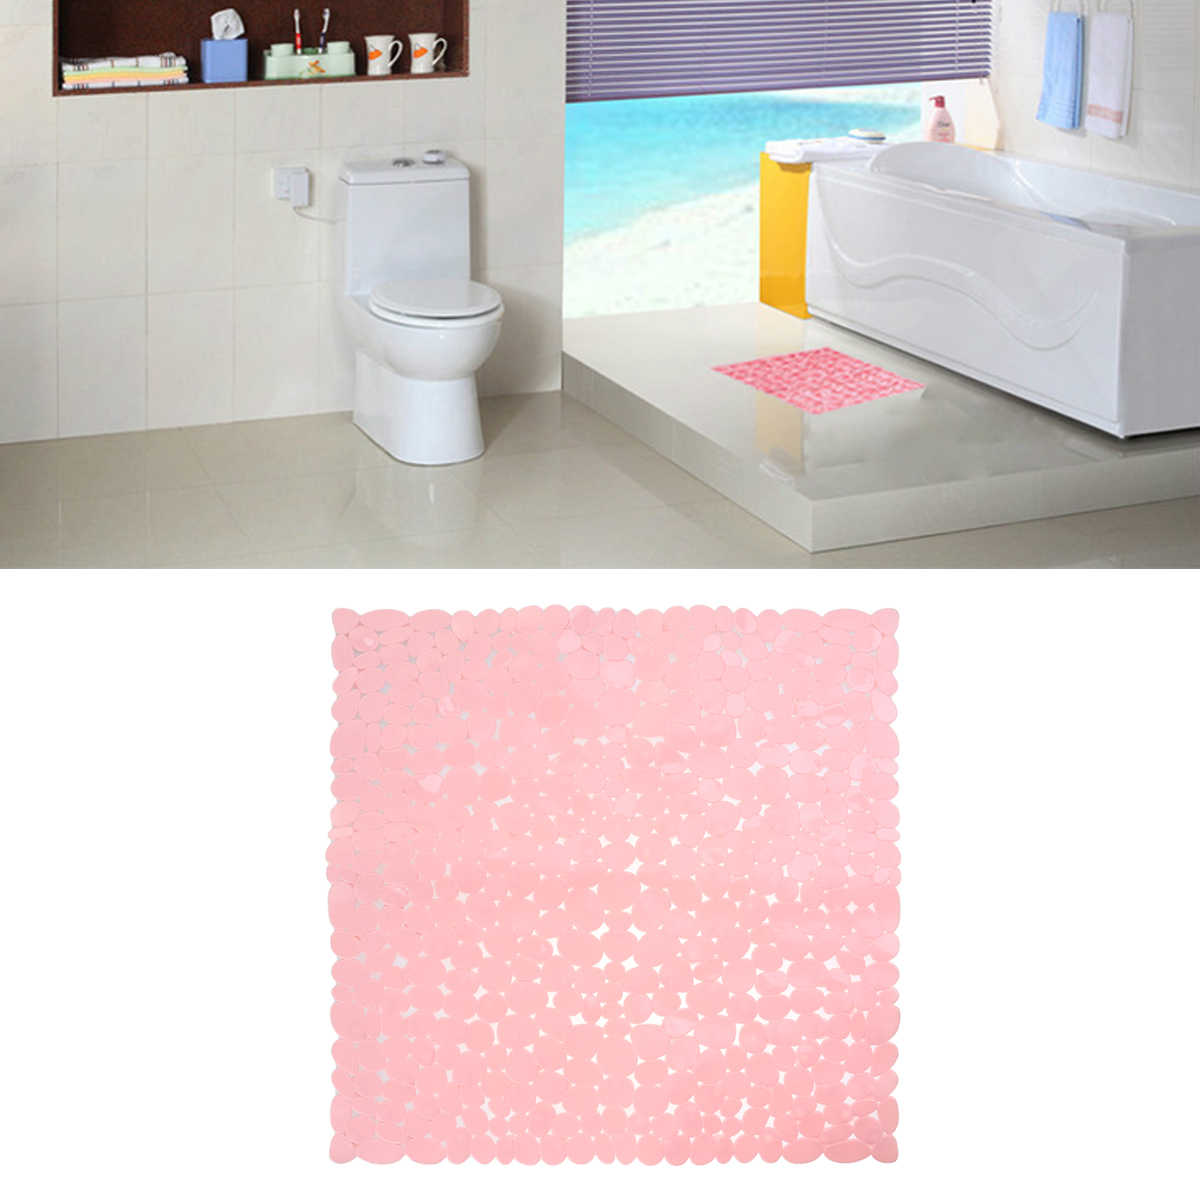 Bath Non-Slip Mat Square Cobblestone Bath Shower Safety Mats Anti-Bacterial Mildew Resistant Antiskid Mat